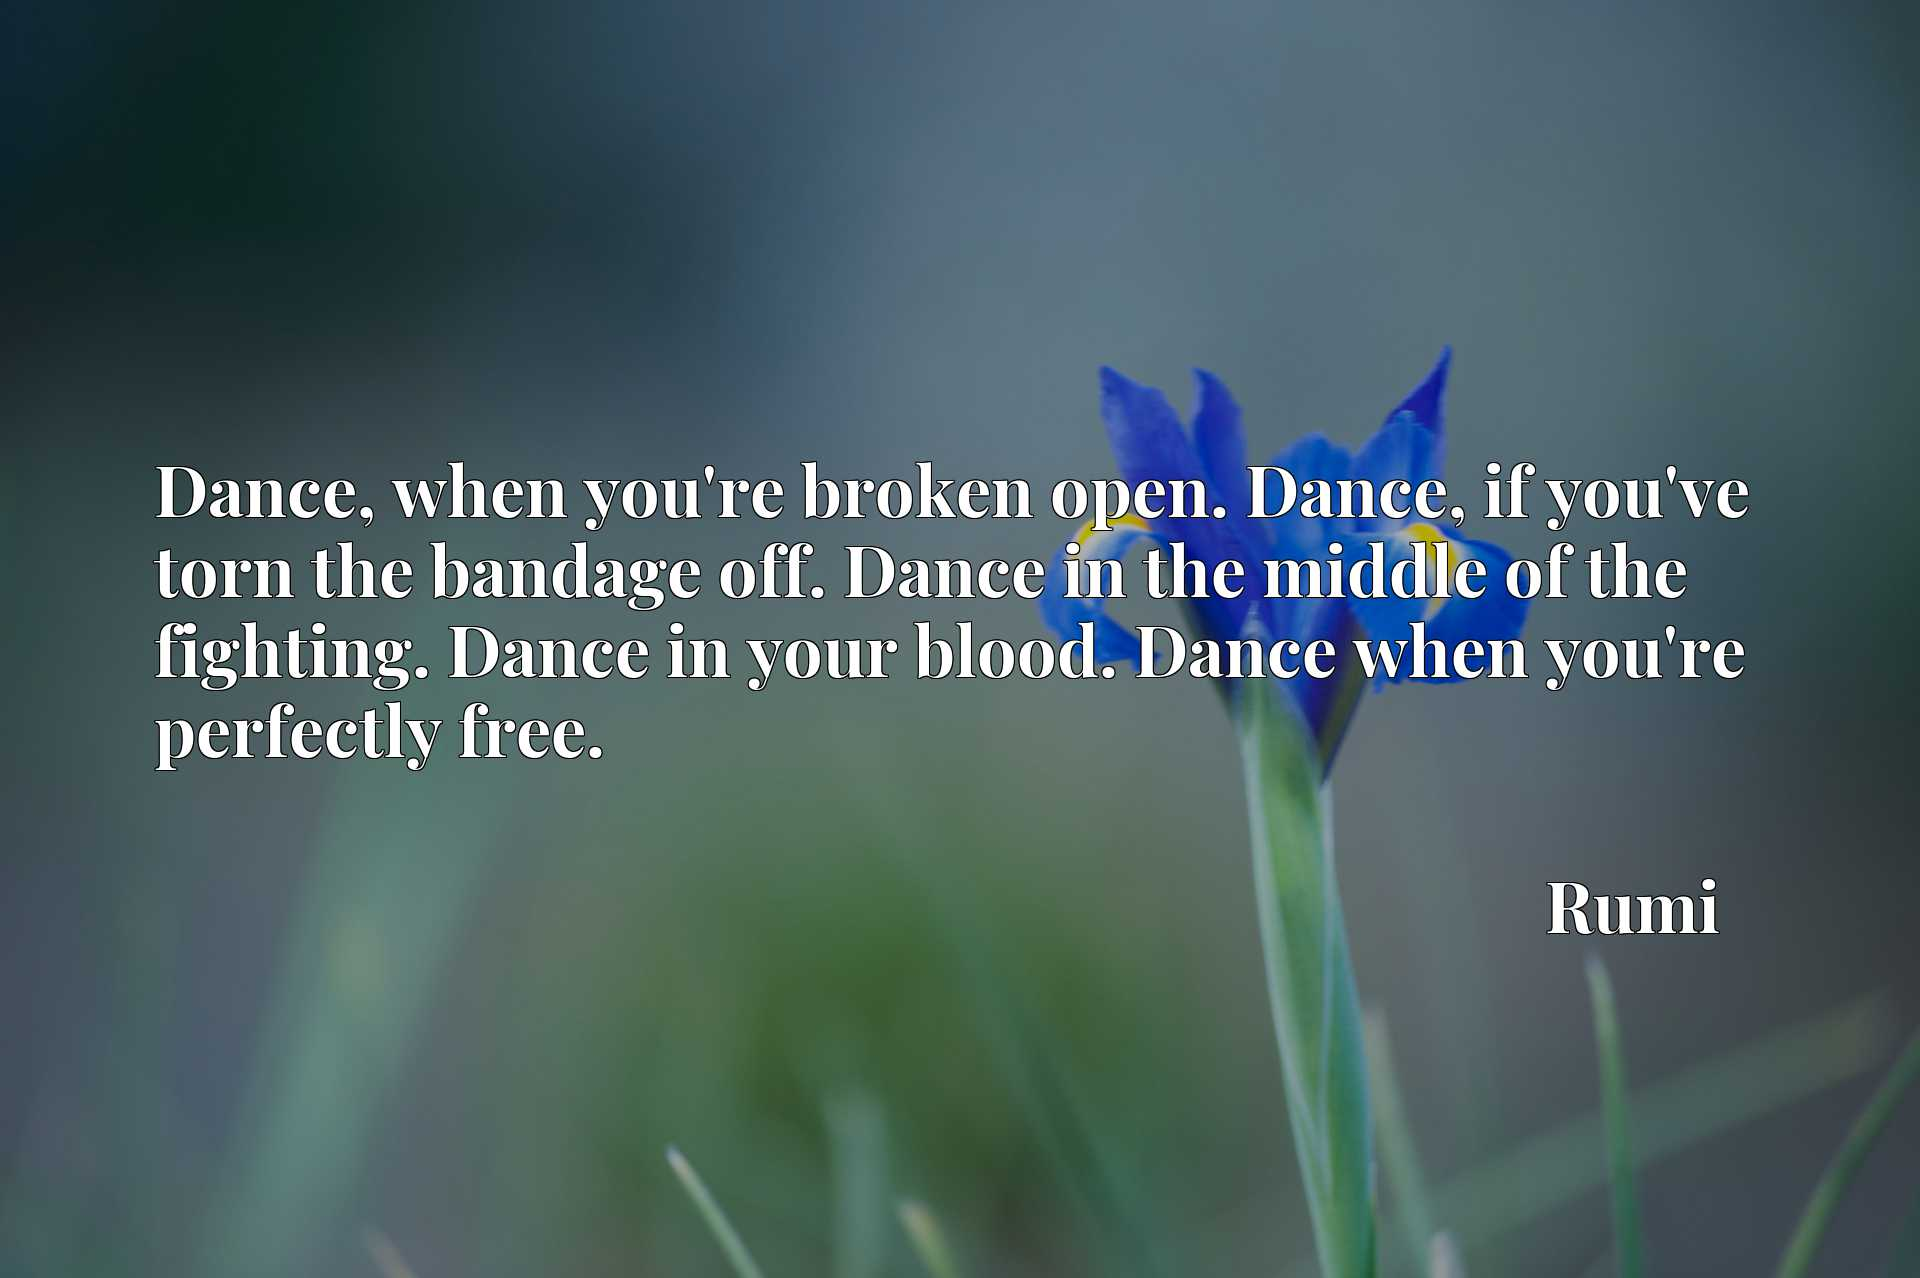 Dance, when you're broken open. Dance, if you've torn the bandage off. Dance in the middle of the fighting. Dance in your blood. Dance when you're perfectly free.